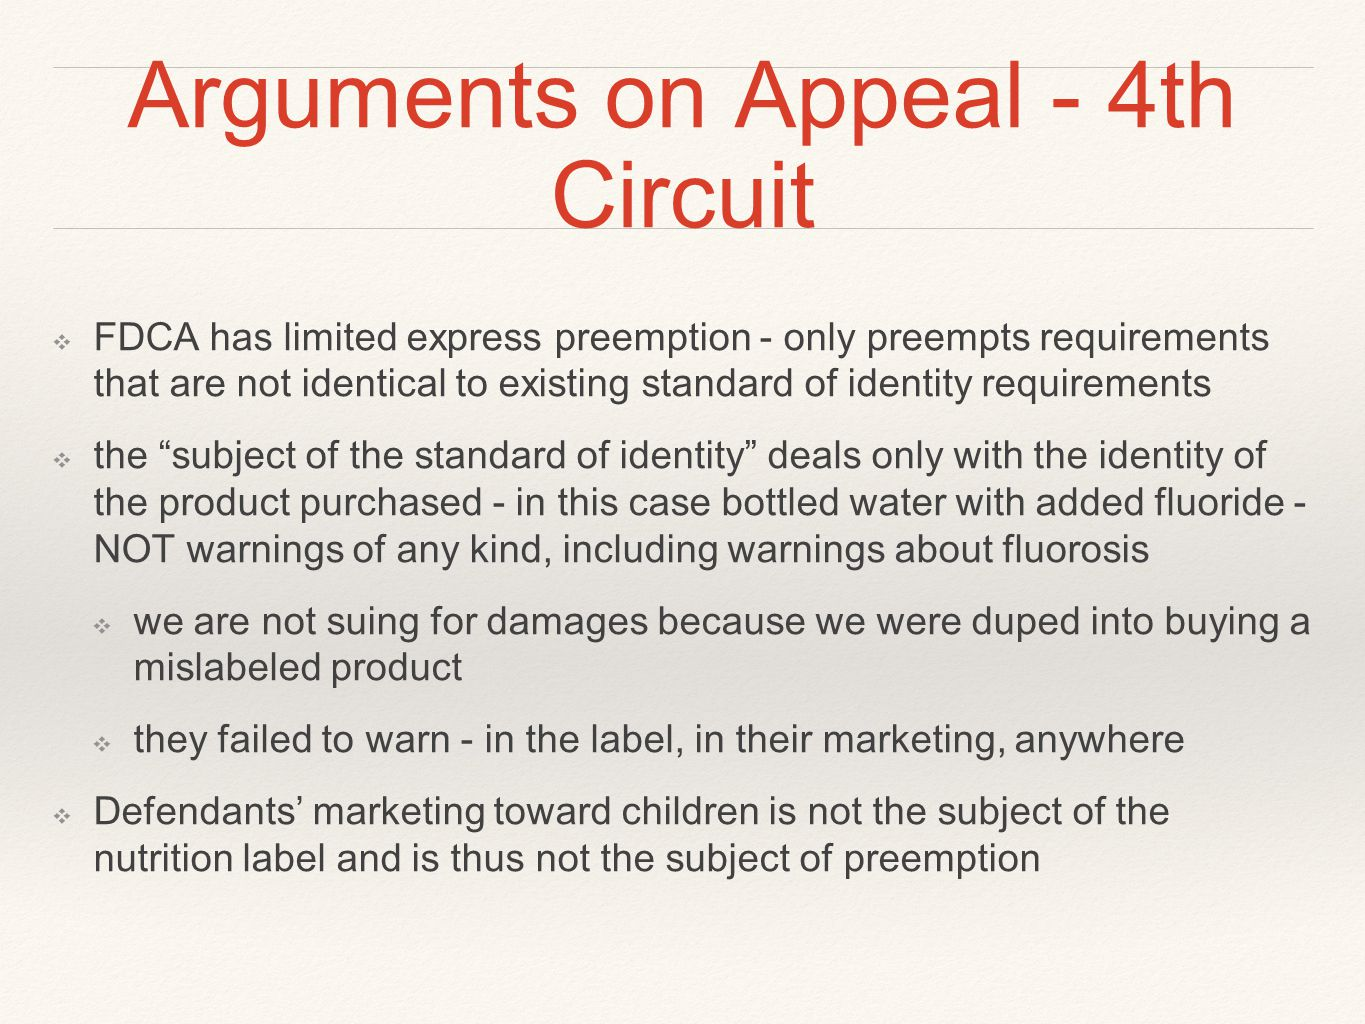 Arguments on Appeal - 4th Circuit ❖ FDCA has limited express preemption - only preempts requirements that are not identical to existing standard of id